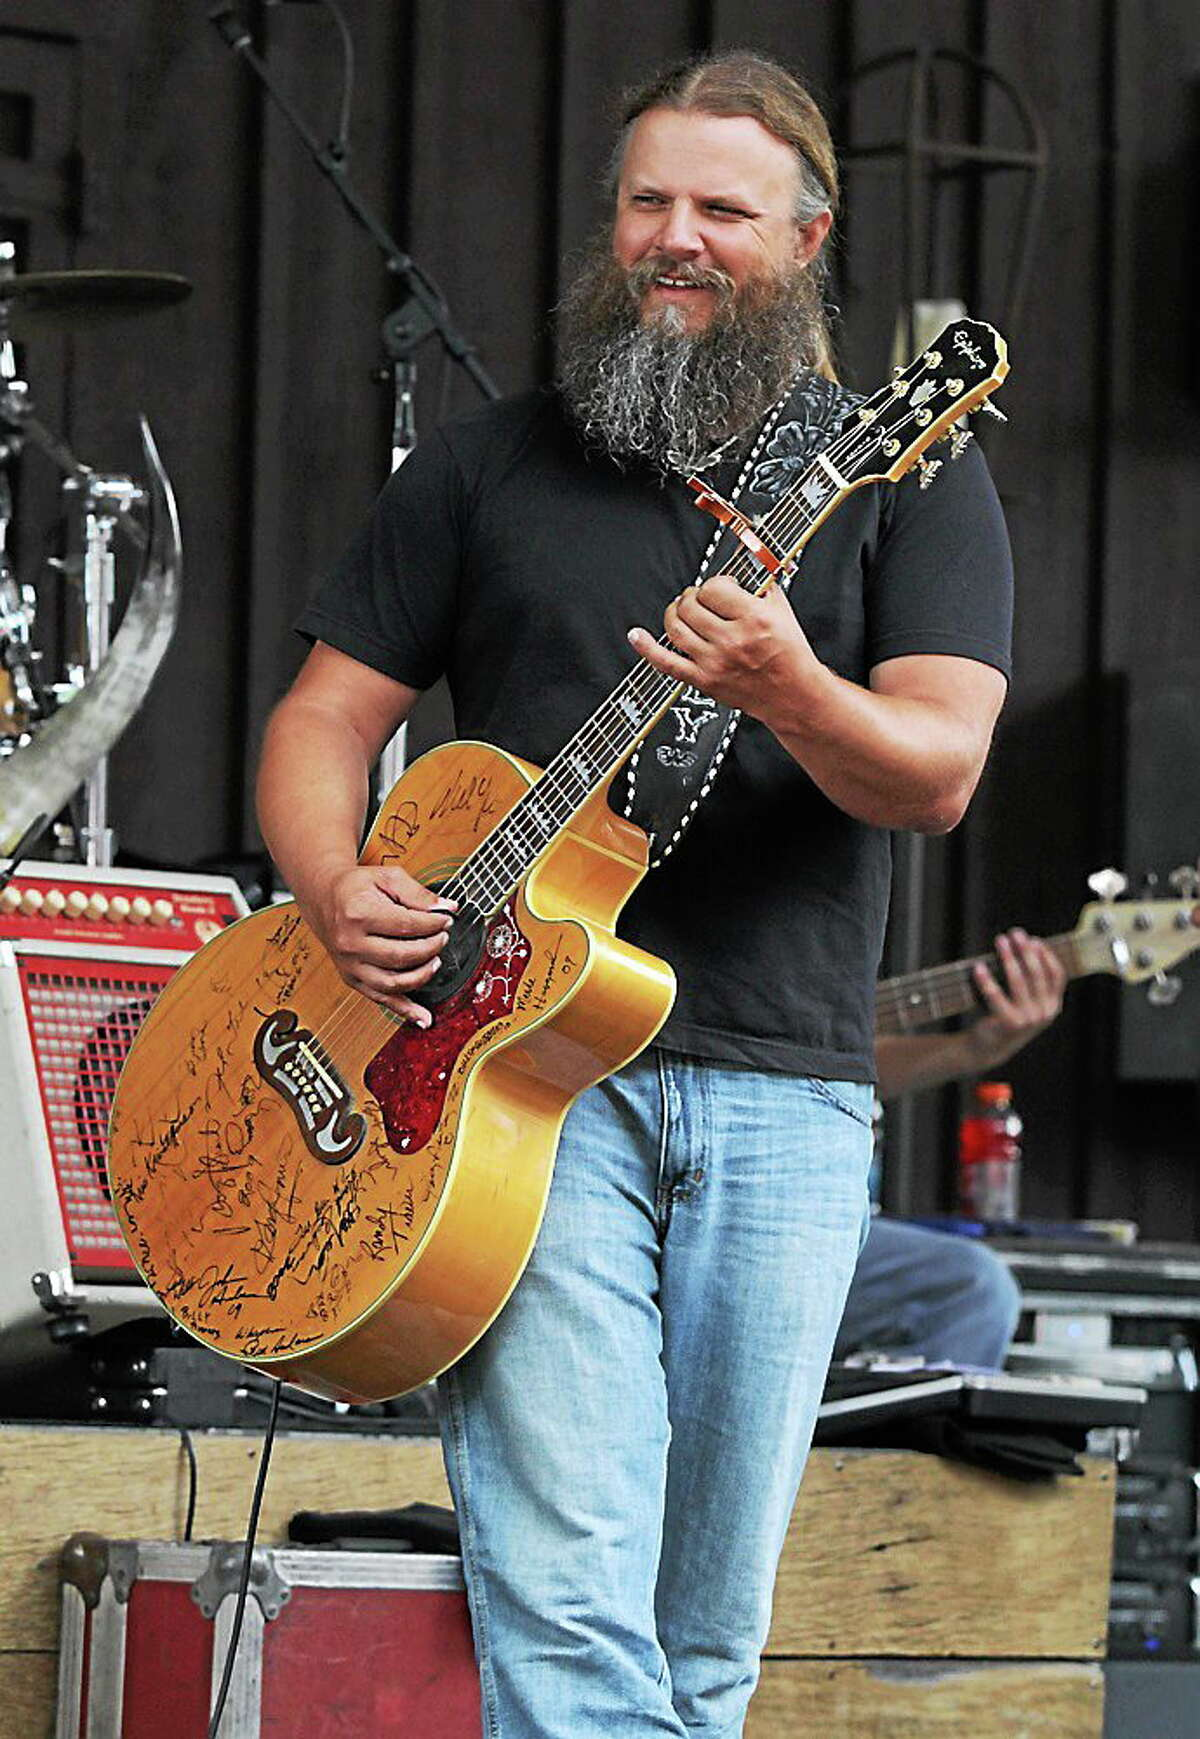 Photo by John Atashian Country music artist Jamey Johnson is shown smiling at one of his band members during their live concert performance June 29 at Indian Ranch in Webster, Mass. This was the opening show at this great outdoor venue Indian Ranch. Other Sunday afternoon performances this summer include BB King, The Marshall Tucker Band, The Bare Naked Ladies, Scotty McCreery, The Mavericks, Bret Michaels, Willie Nelson and many others. To get all the details on this outdoor concert venue you can visit www.indianranch.com.